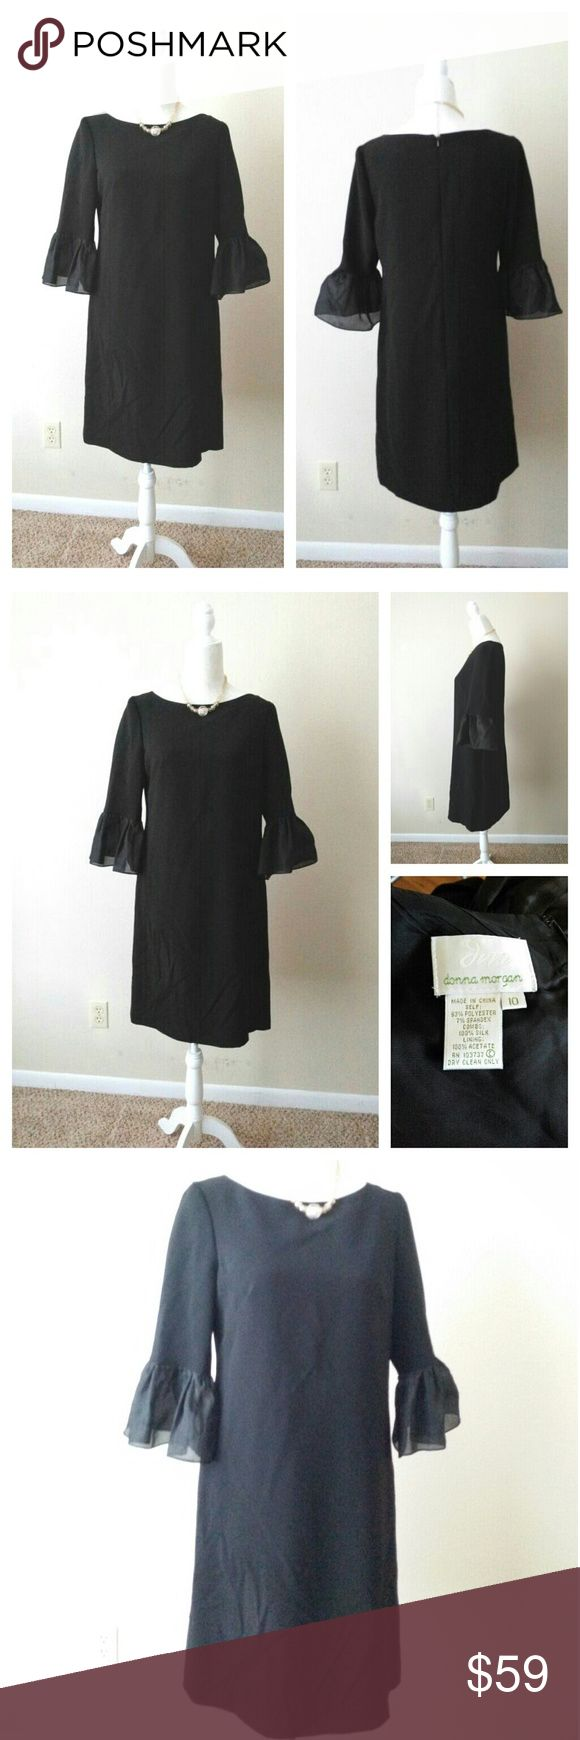 "Donna Morgan bell sleeves black dress sz 10 Donna Morgan bell sleeves black dress sz 10 Approx measurements Bust 38"" Waist 39"" Hips 40"" Length 37"" Sleeves 18"" S to S 15.5"" Zipper 21"" Dry clean only  Great condition Donna Morgan Dresses"